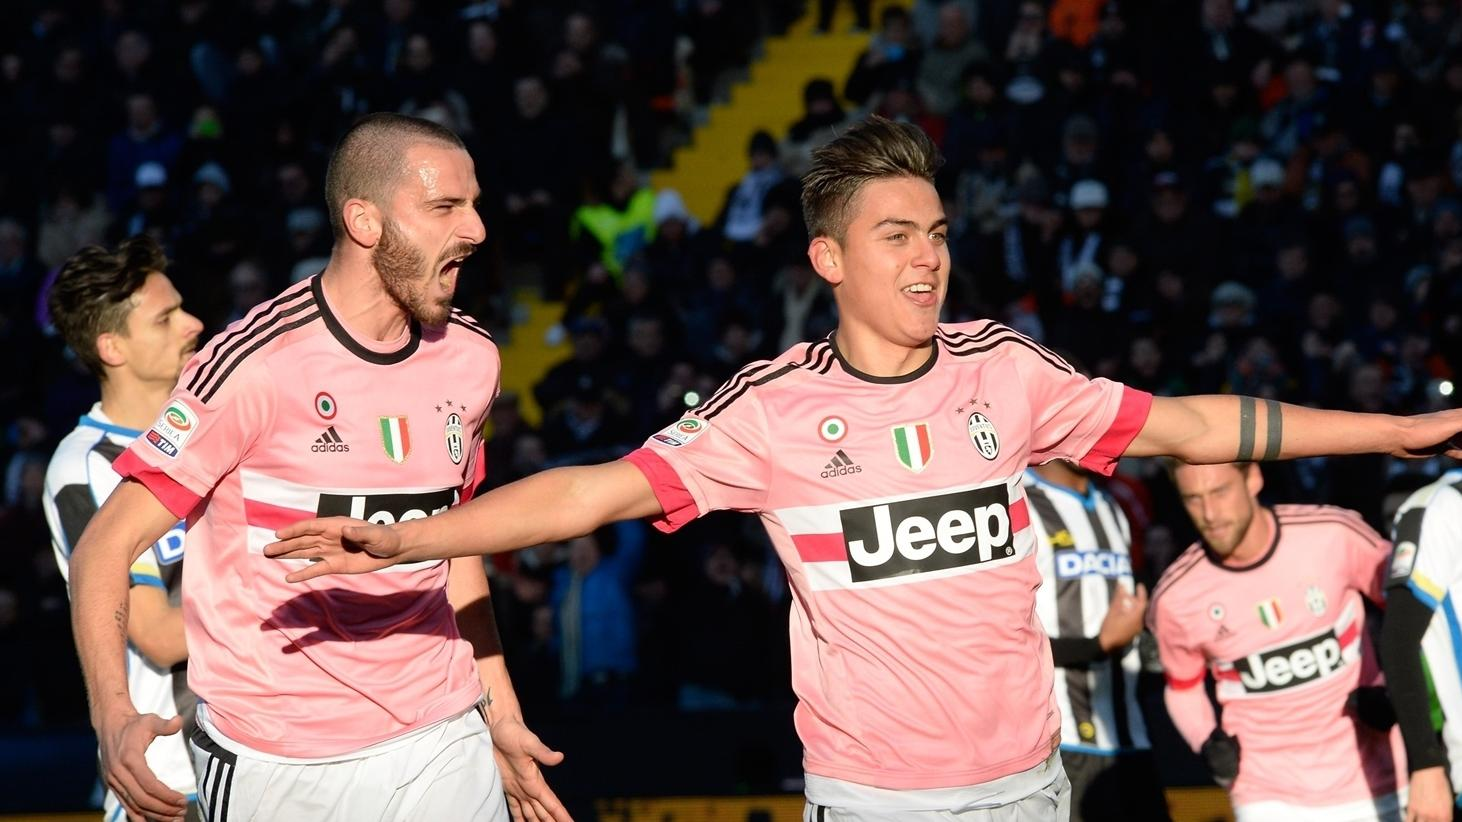 messi and pirlo in one dybala driving juventus up serie a uefa champions league uefa com dybala driving juventus up serie